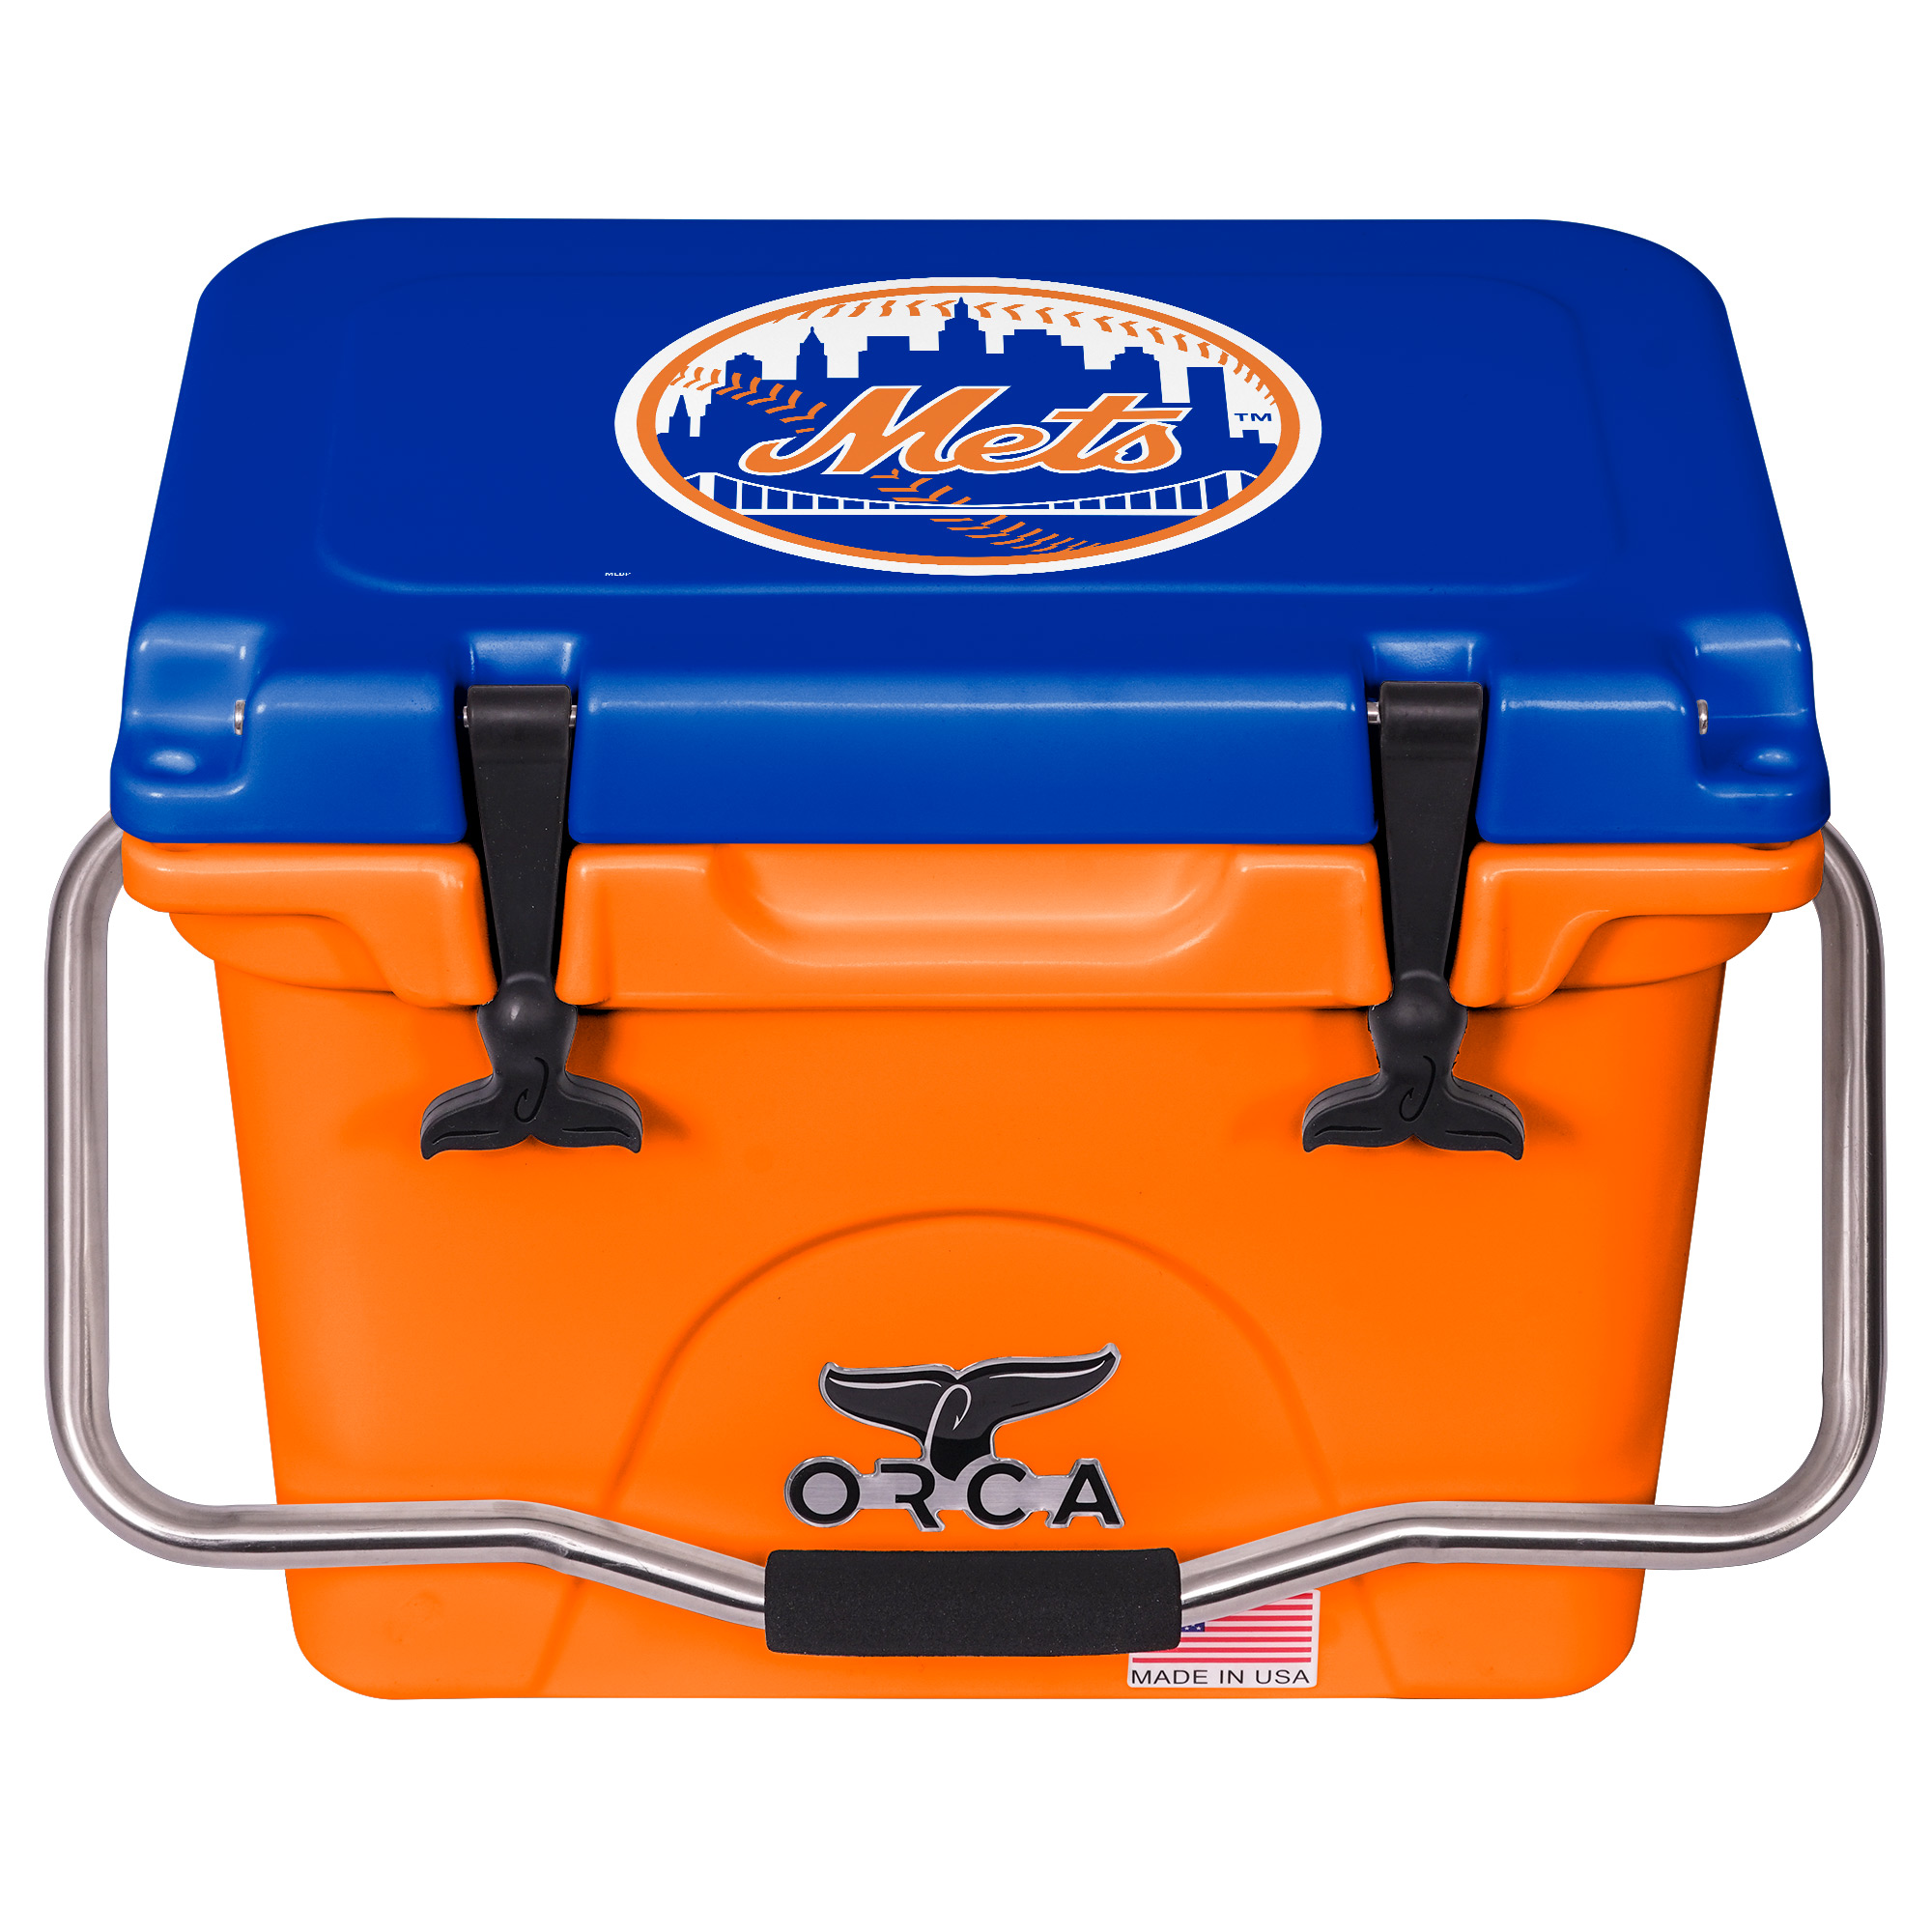 New York Mets ORCA 20-Quart Hard-Sided Cooler - No Size